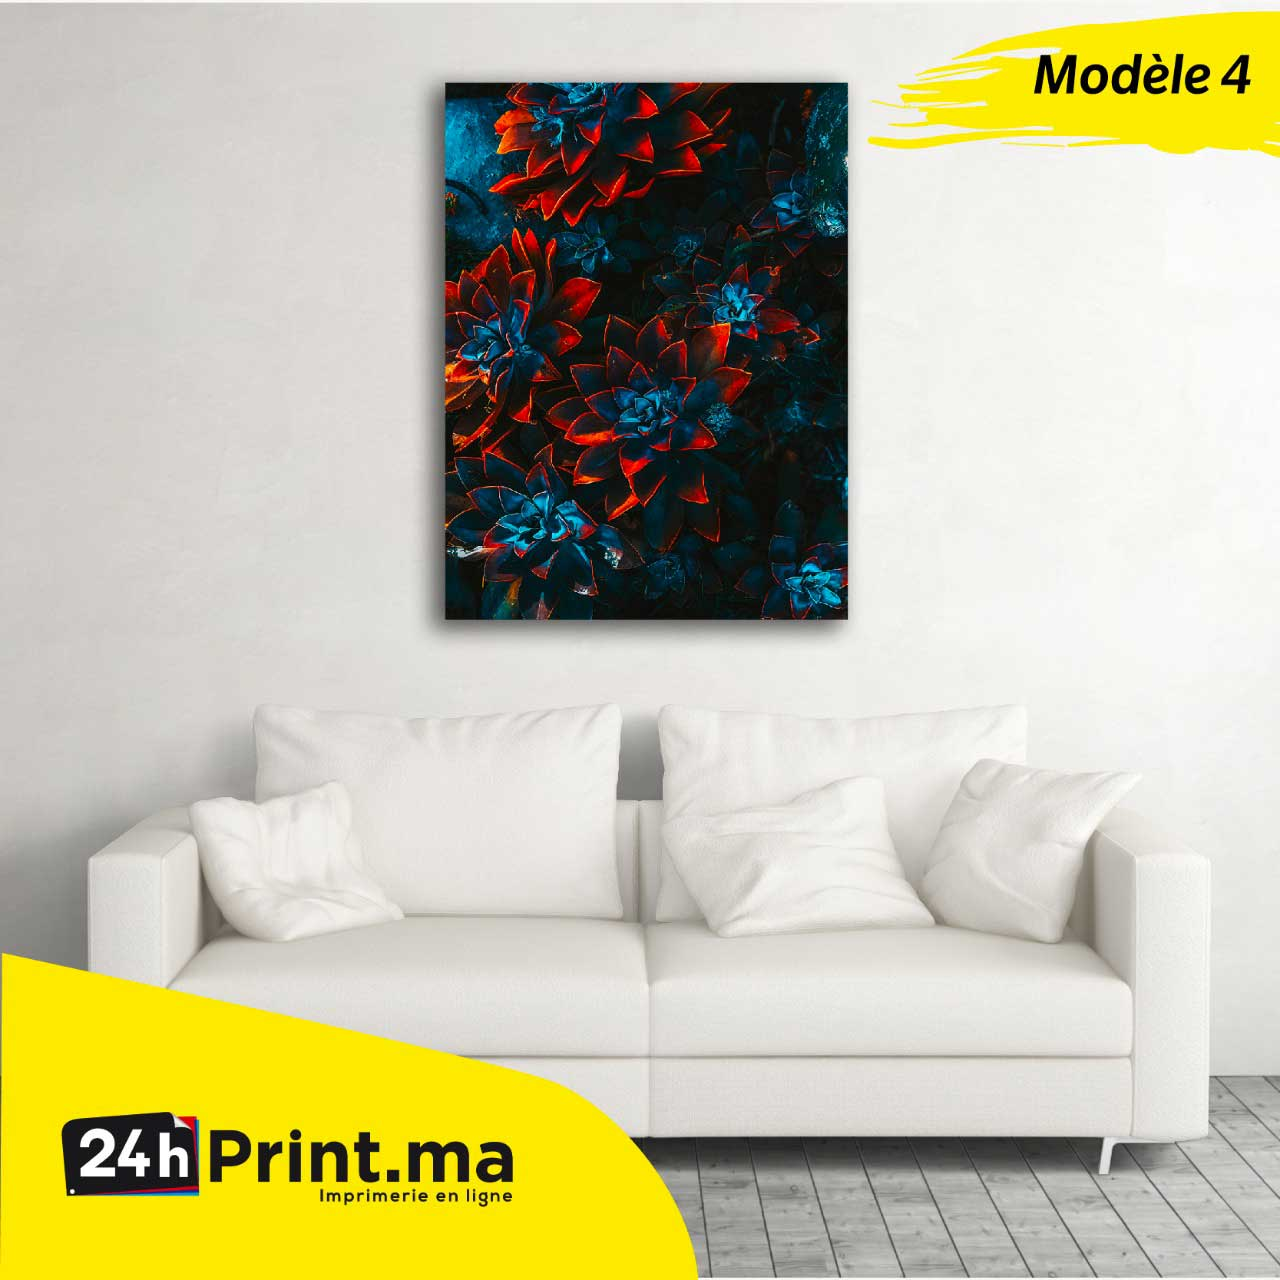 https://www.24hprint.ma/images/products_gallery_images/447.jpg